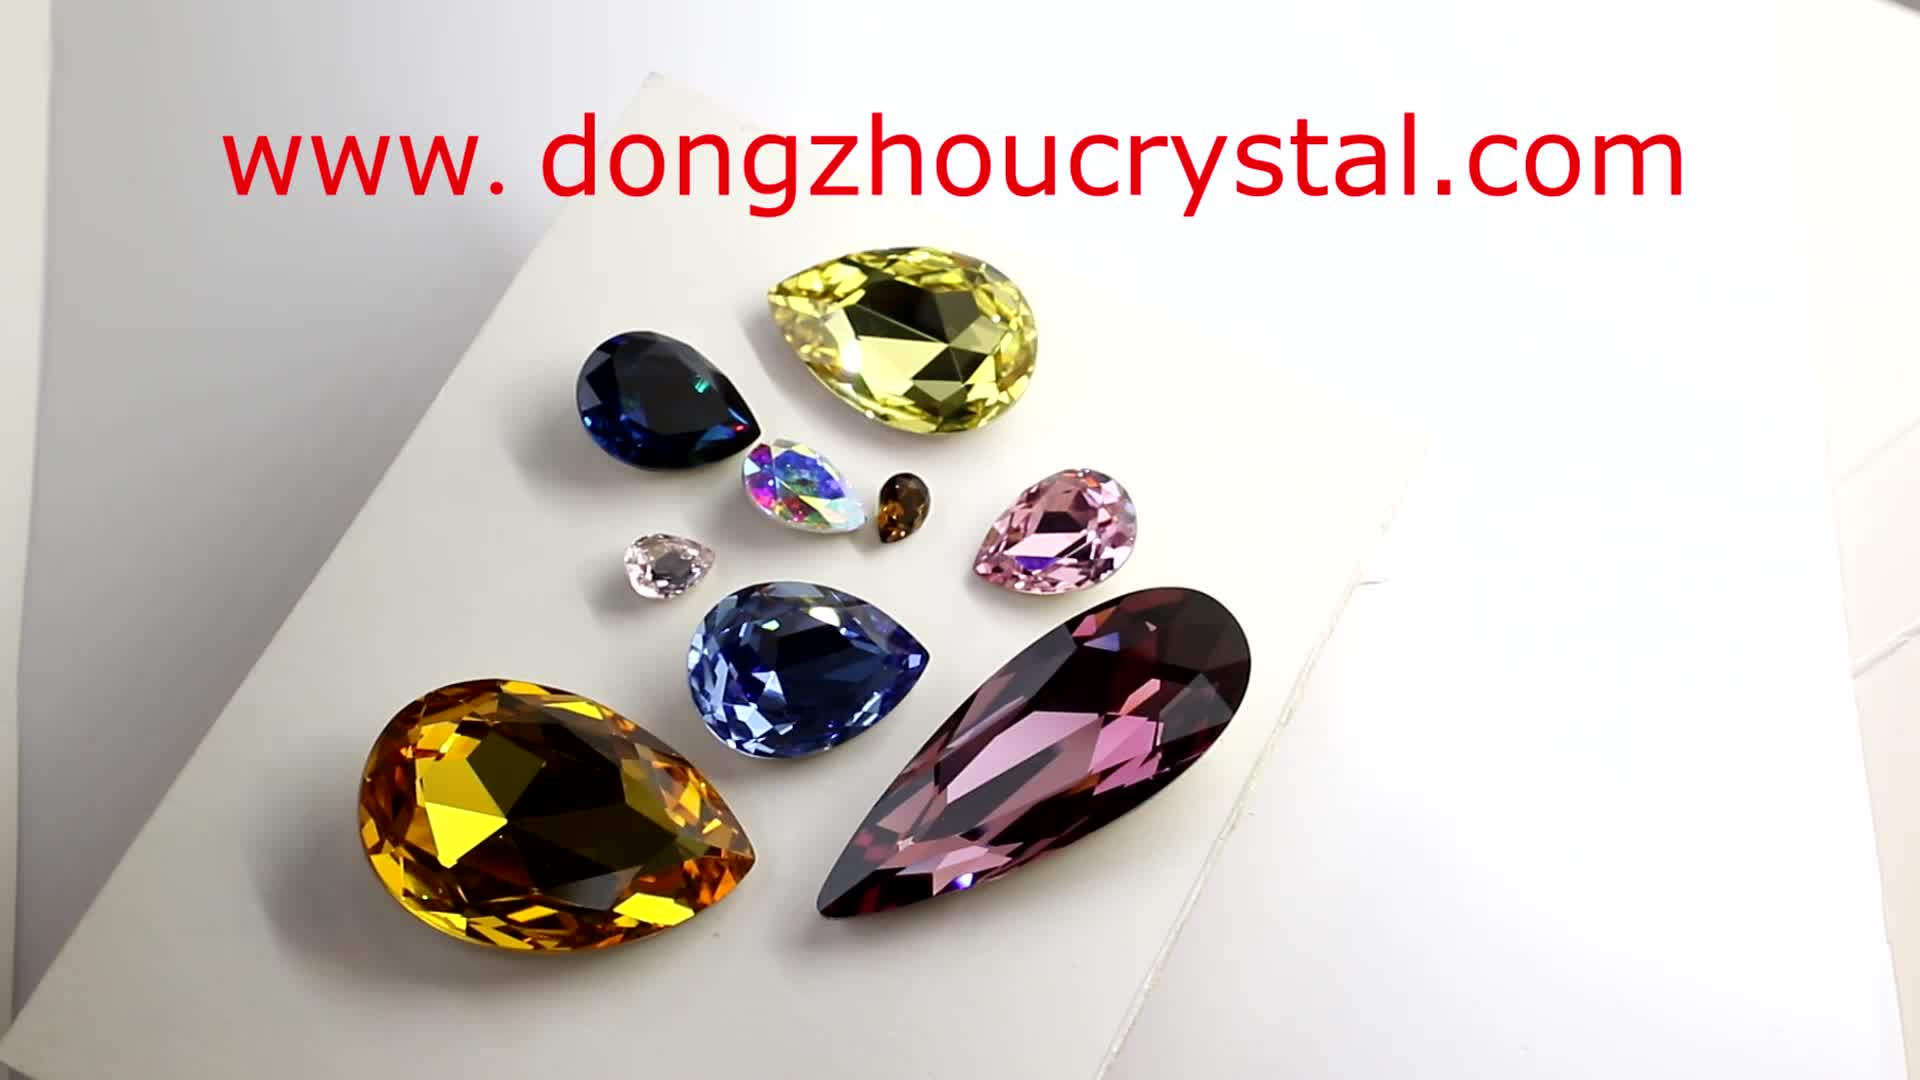 Dongzhou Crystal 3003 Hot Selling Waterdrop Pink Rose Crystal Fancy Stone For Jewelry FREE SAMPLE